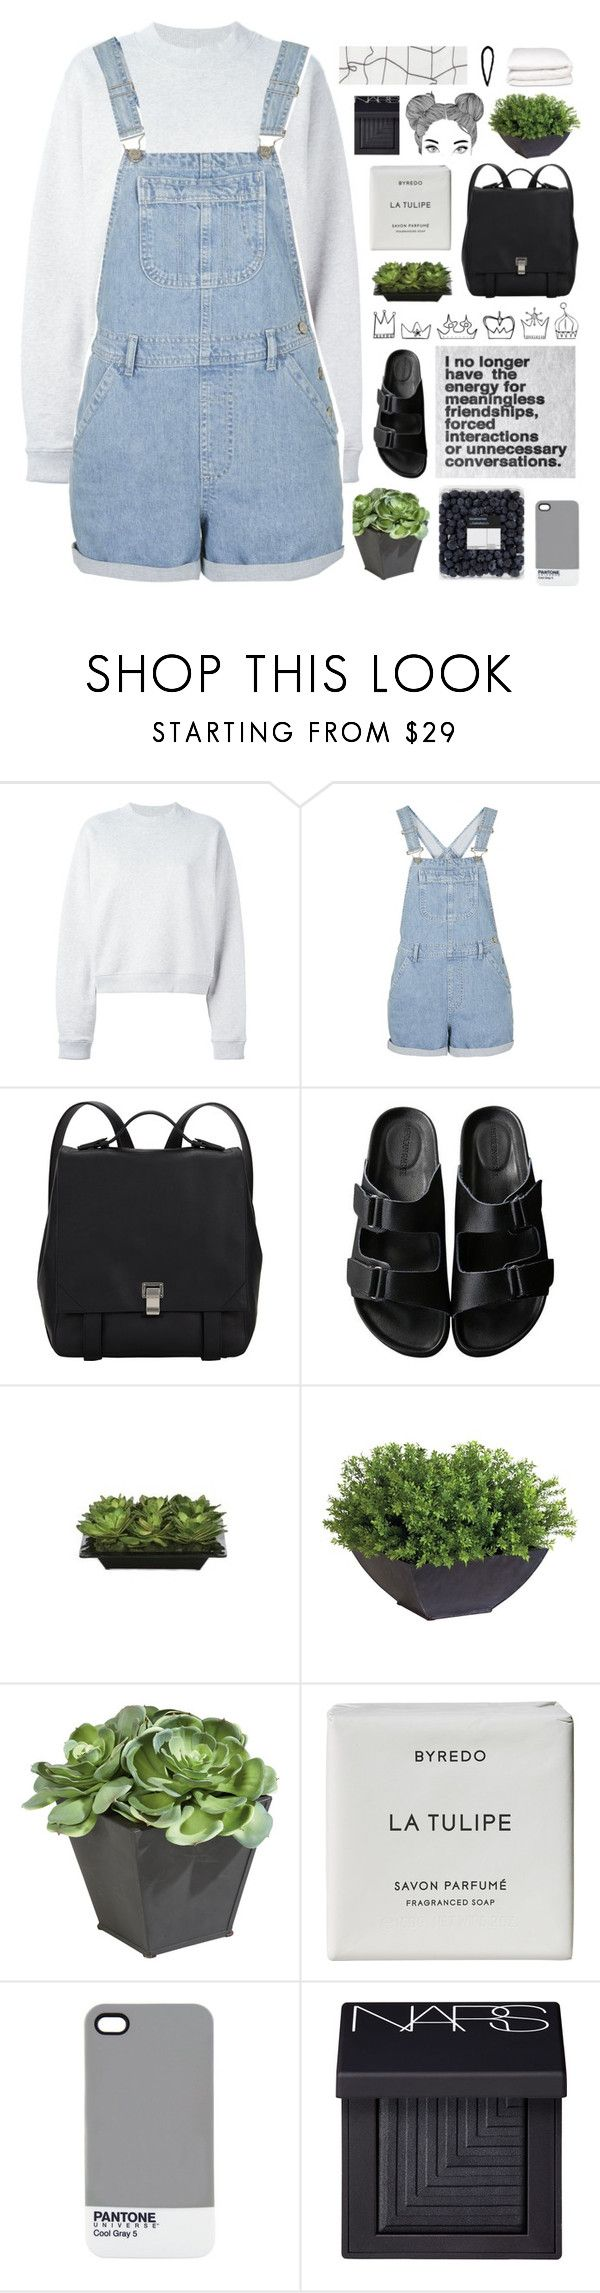 """""""ellie // tag"""" by she-never-falls-in-love ❤ liked on Polyvore featuring Acne Studios, Topshop, Proenza Schouler, American Rag Cie, Lux-Art Silks, Ethan Allen, Byredo, Pantone, NARS Cosmetics and Selfridges"""